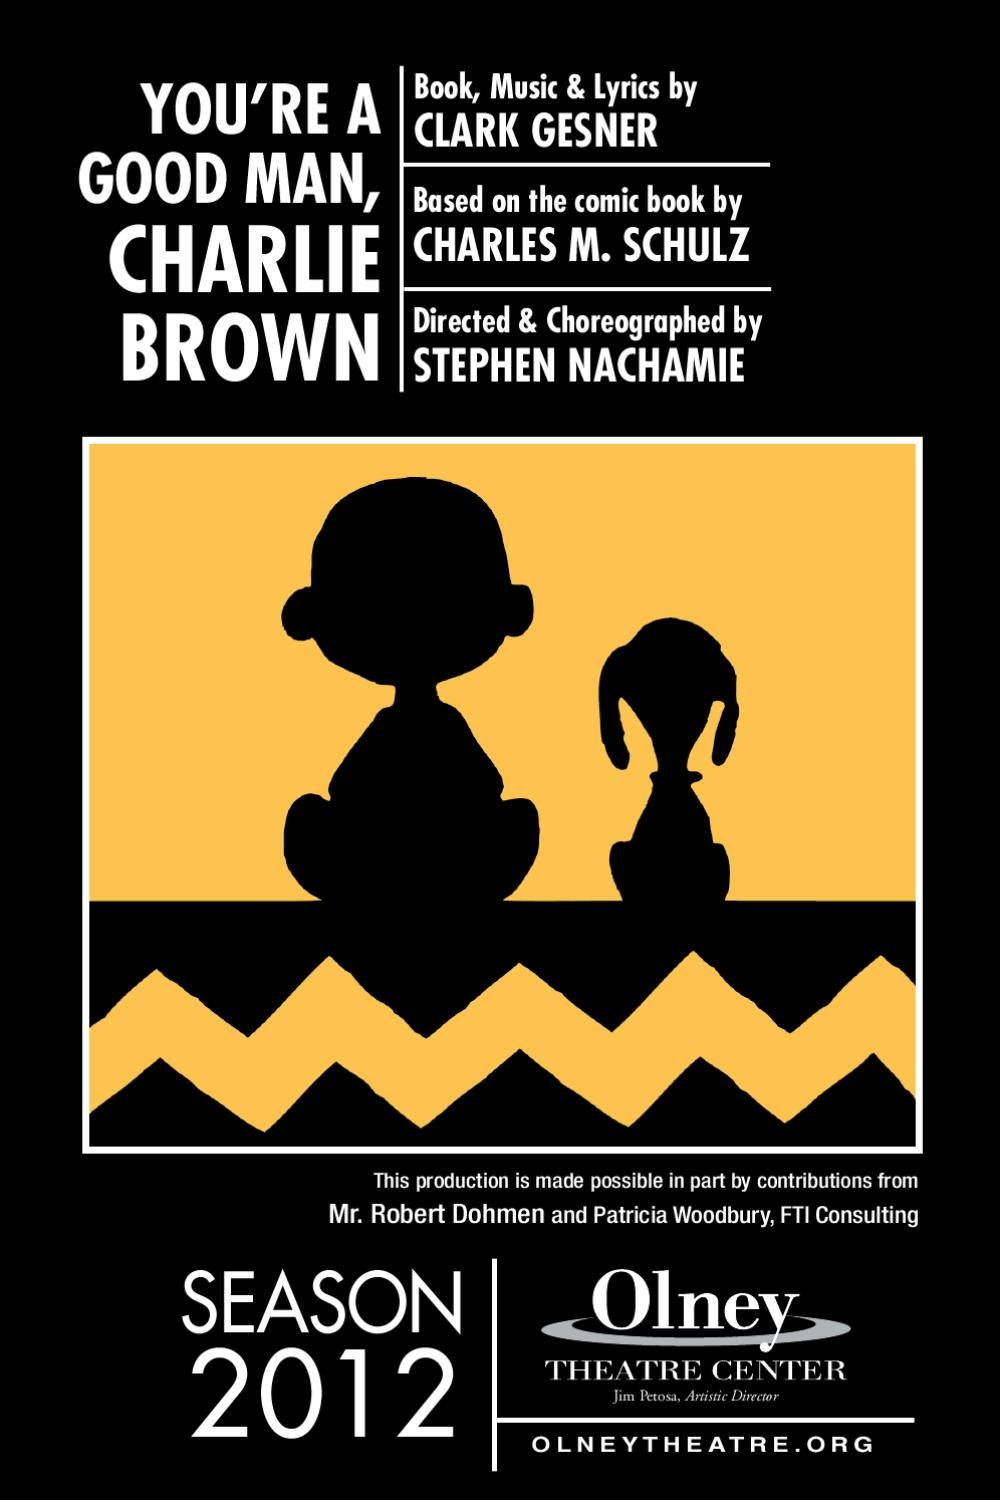 book report good man charlie brown lyrics Book by john gordon music & lyrics by clark  you're a good man, charlie brown explores life through the eyes of iconic anti-hero charlie brown along with his.